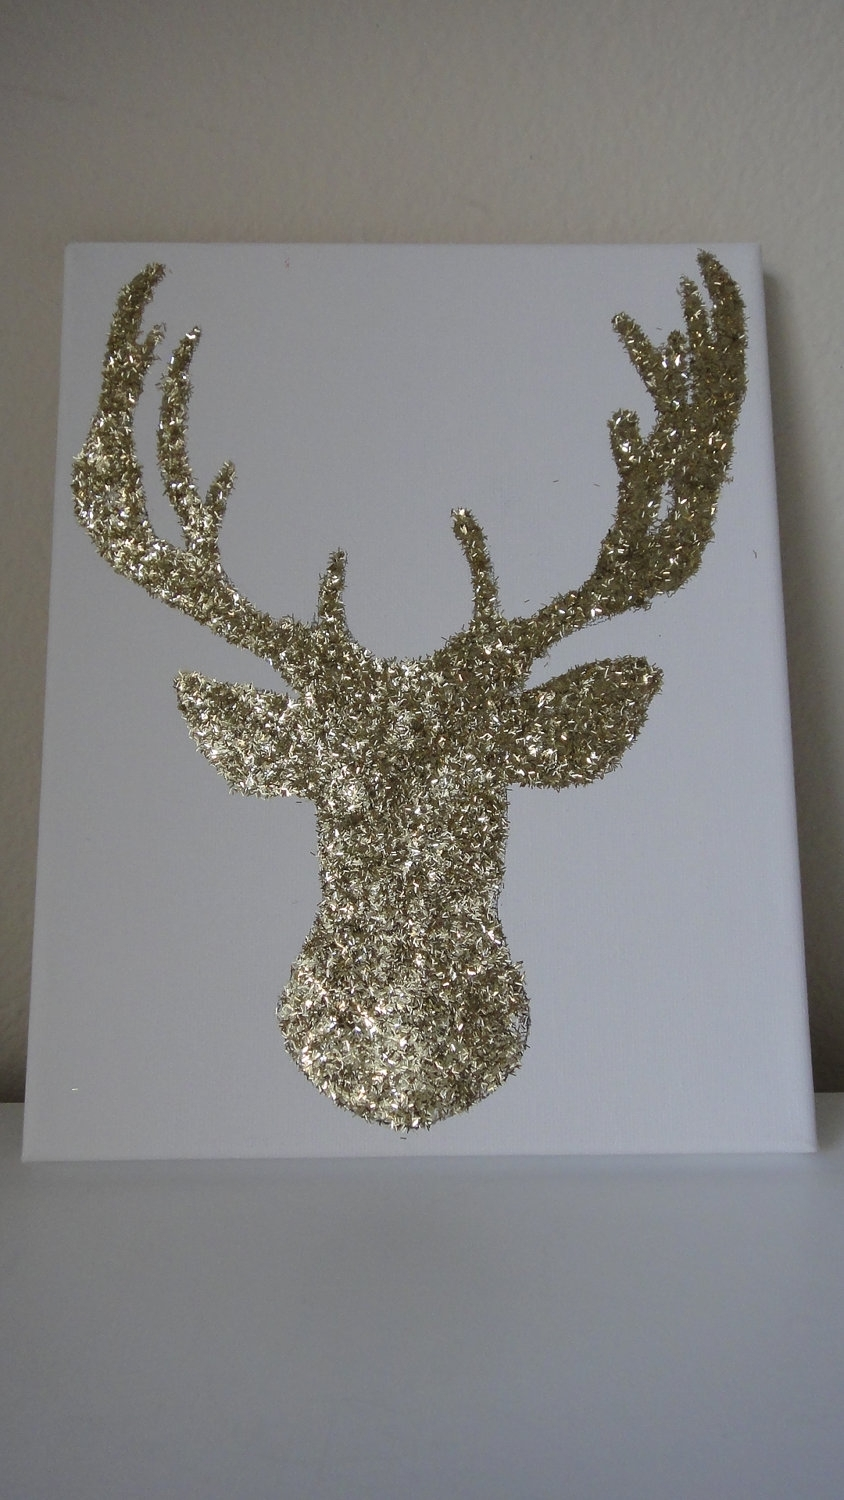 8x10 Gold Glitter Reindeer Deer Canvas Wall Art | Gold Glitter Intended For Most Popular Glitter Canvas Wall Art (View 6 of 15)